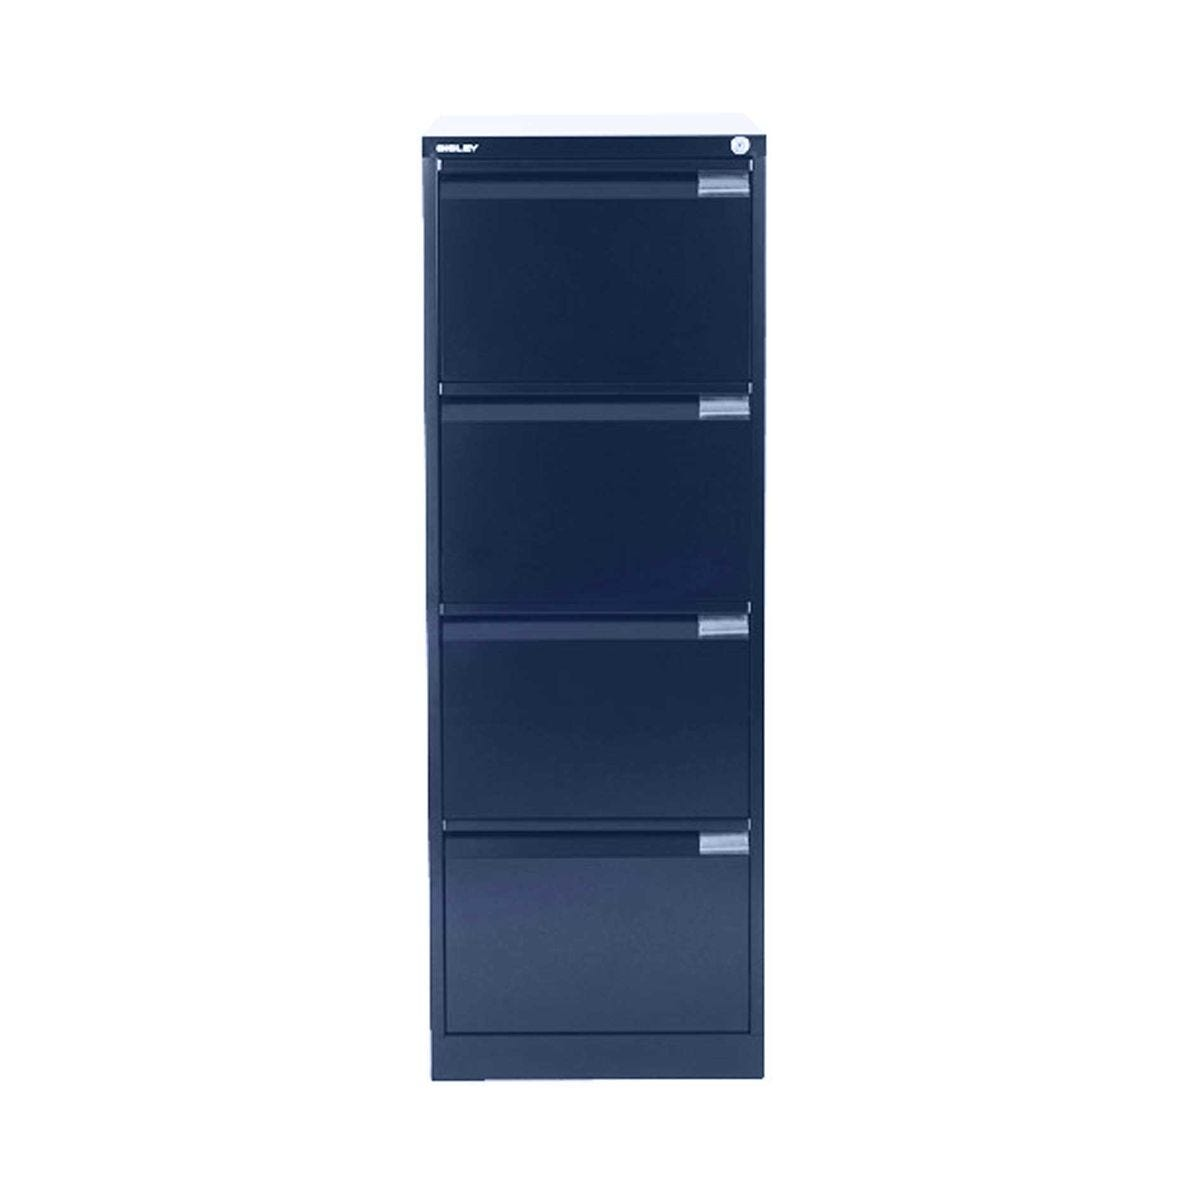 Bisley Filing Cabinet BS4E 4 drawer H1321xW470xD622mm Steel, Oxford Blue